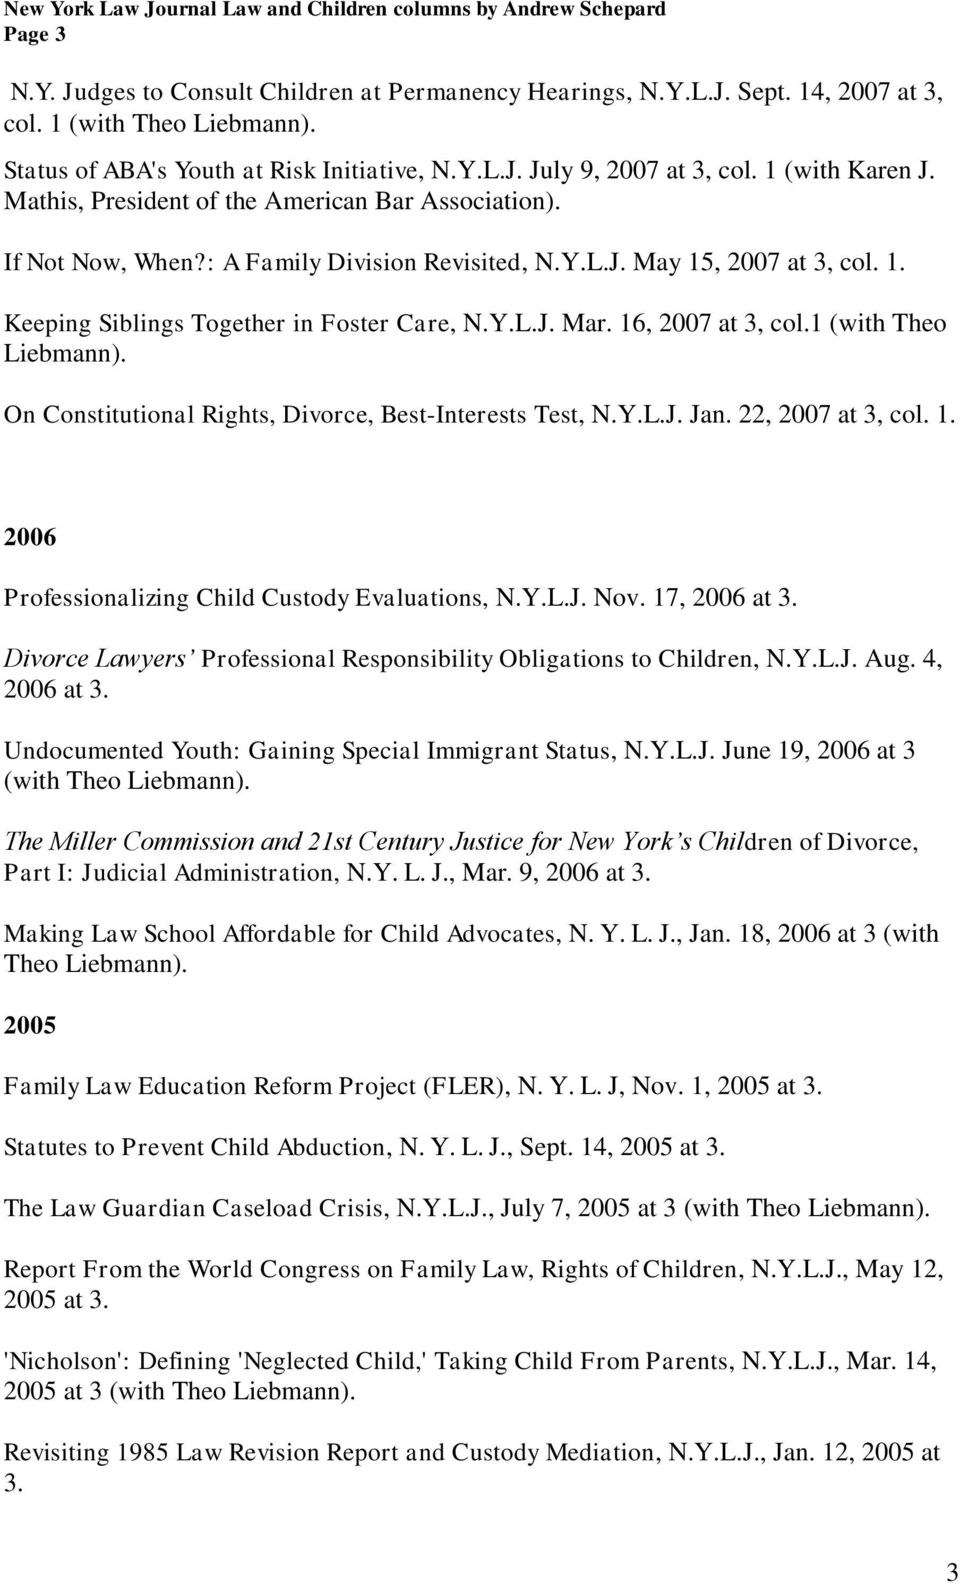 16, 2007 at 3, col.1 (with Theo Liebmann). On Constitutional Rights, Divorce, Best-Interests Test, N.Y.L.J. Jan. 22, 2007 at 3, col. 1. 2006 Professionalizing Child Custody Evaluations, N.Y.L.J. Nov.